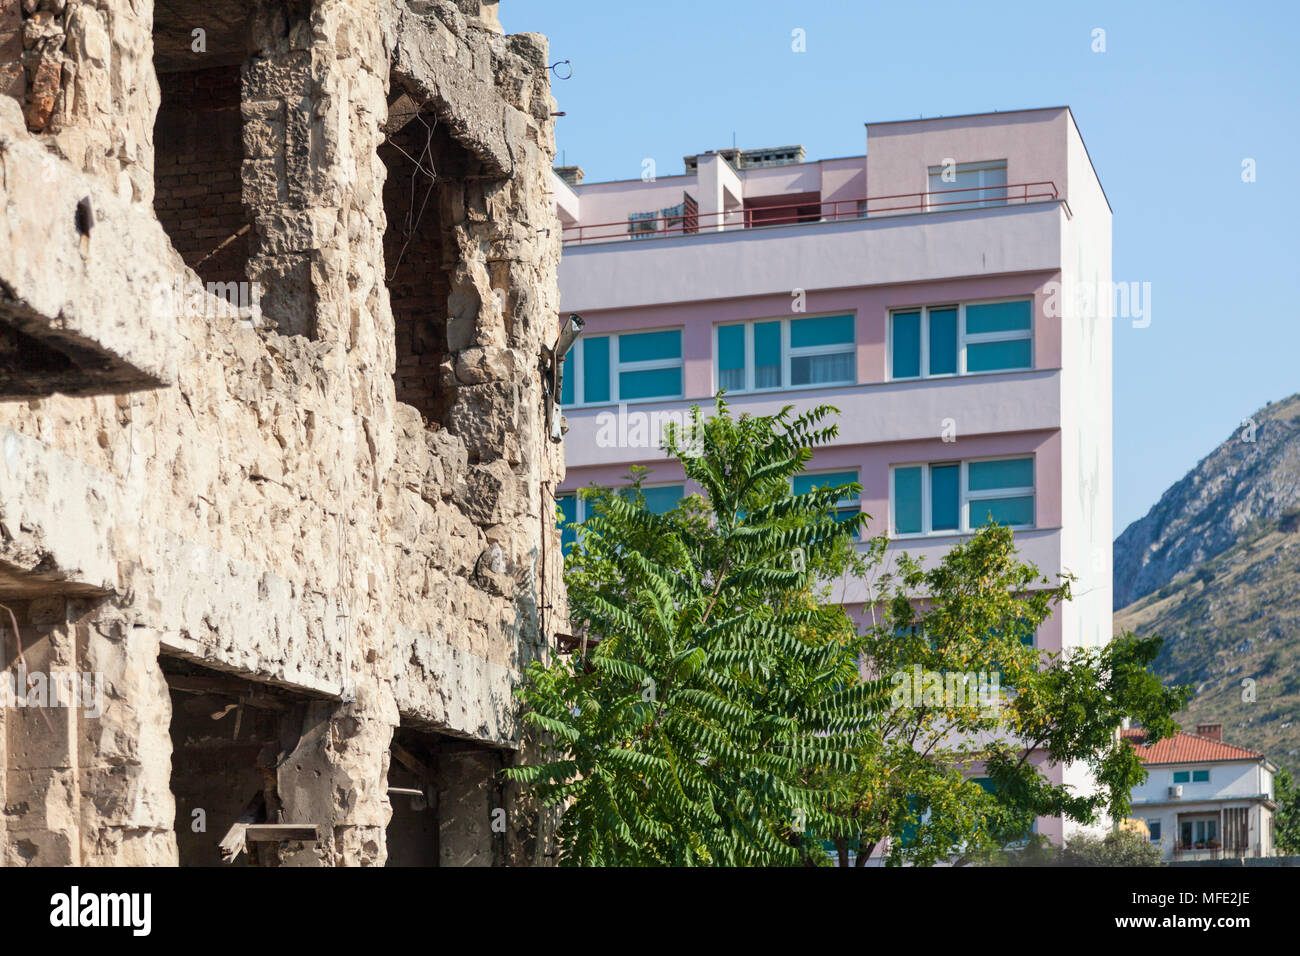 A bombed out building from the Bosnian War next to a new building in Mostar, Bosnia and Herzegovina - Stock Image